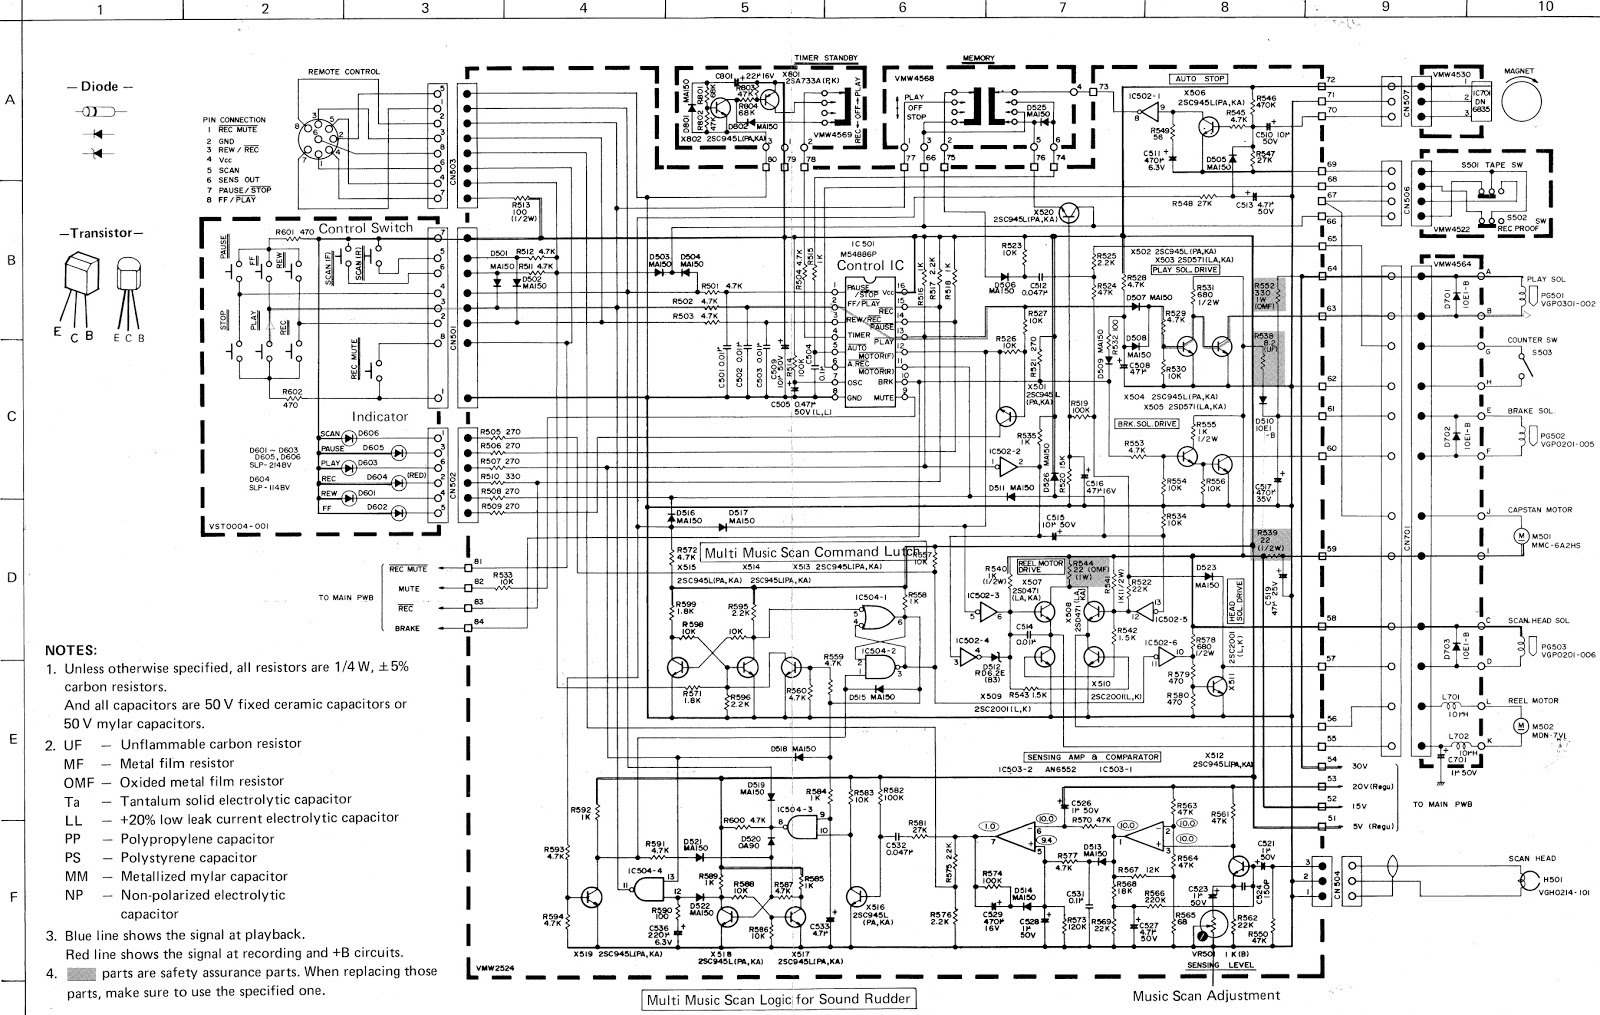 JVC KD A55  Gradient CD6500  Tape deck  Circuit Diagram